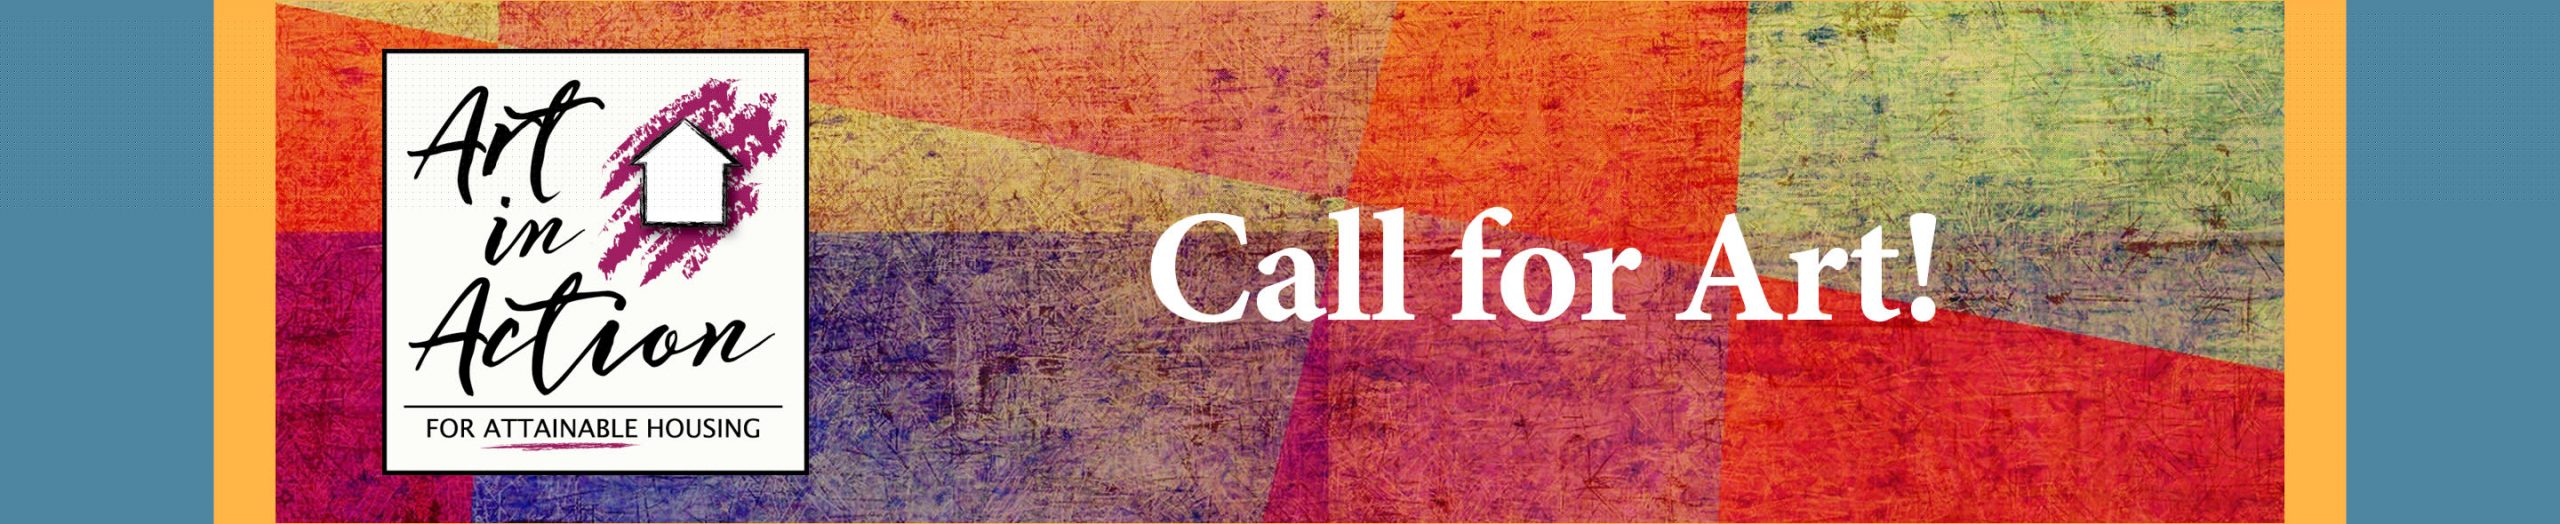 A Call for Art!